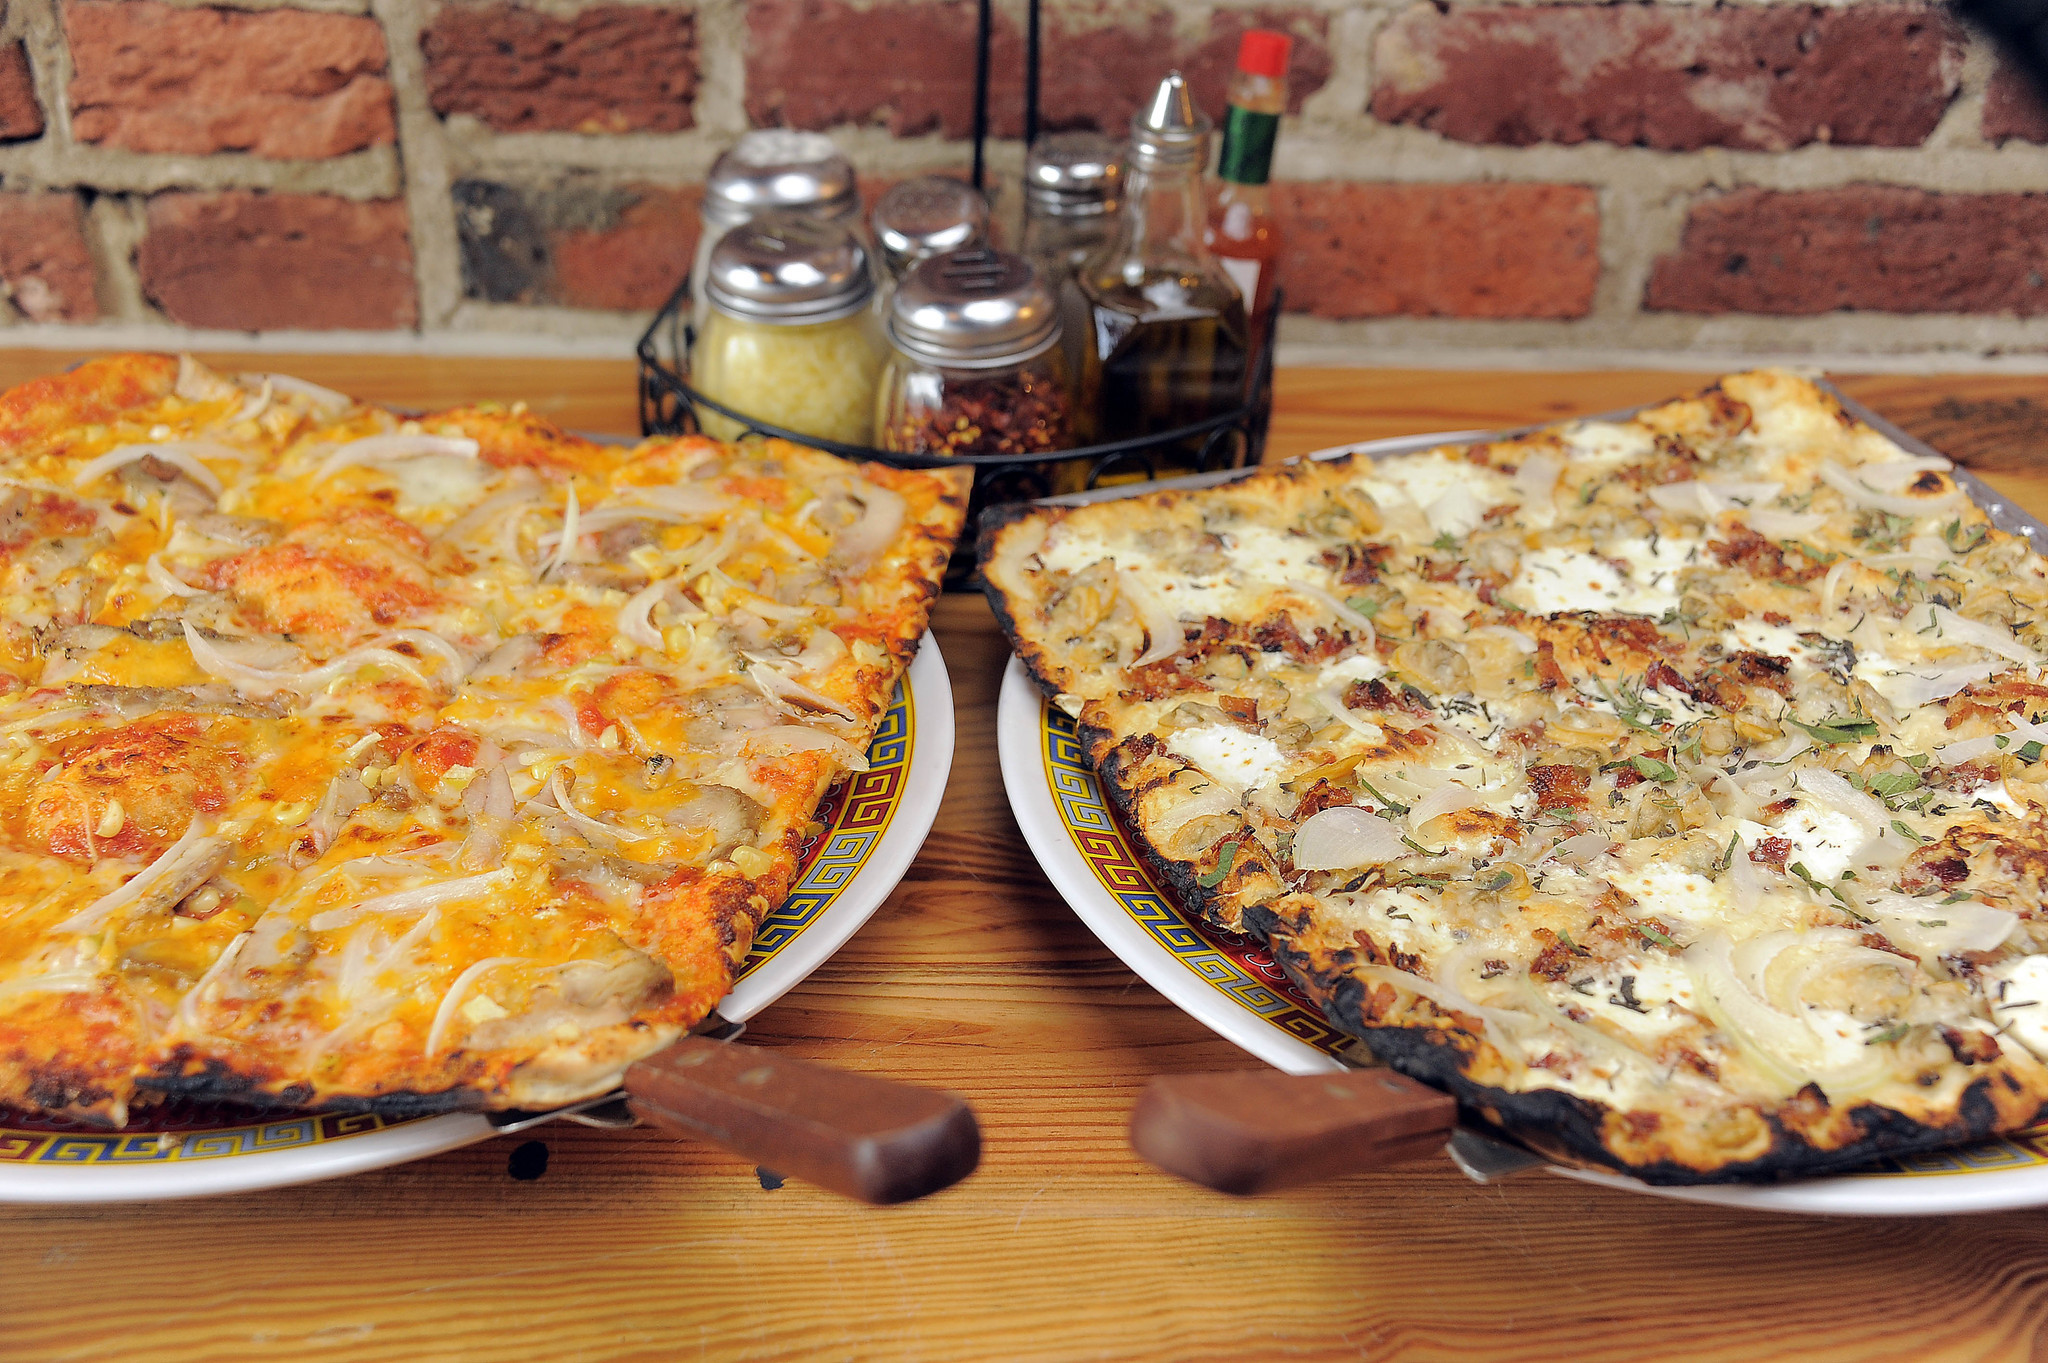 50 things Baltimore foodies must try [Pictures] - Thin crust pizza! Iggies and Joe Squared.